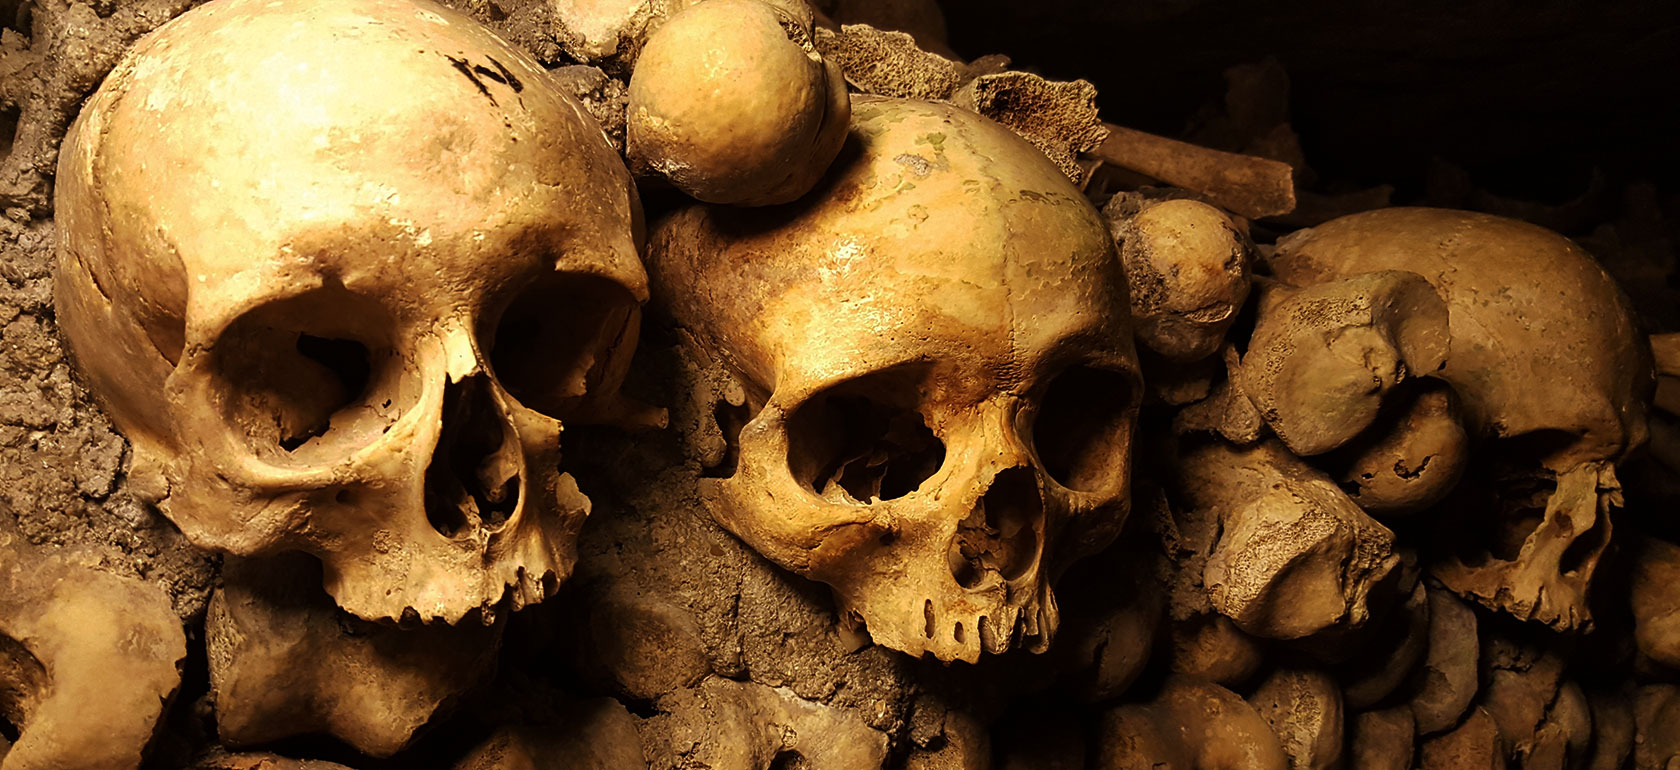 Catacombs of Paris - Skip the line!